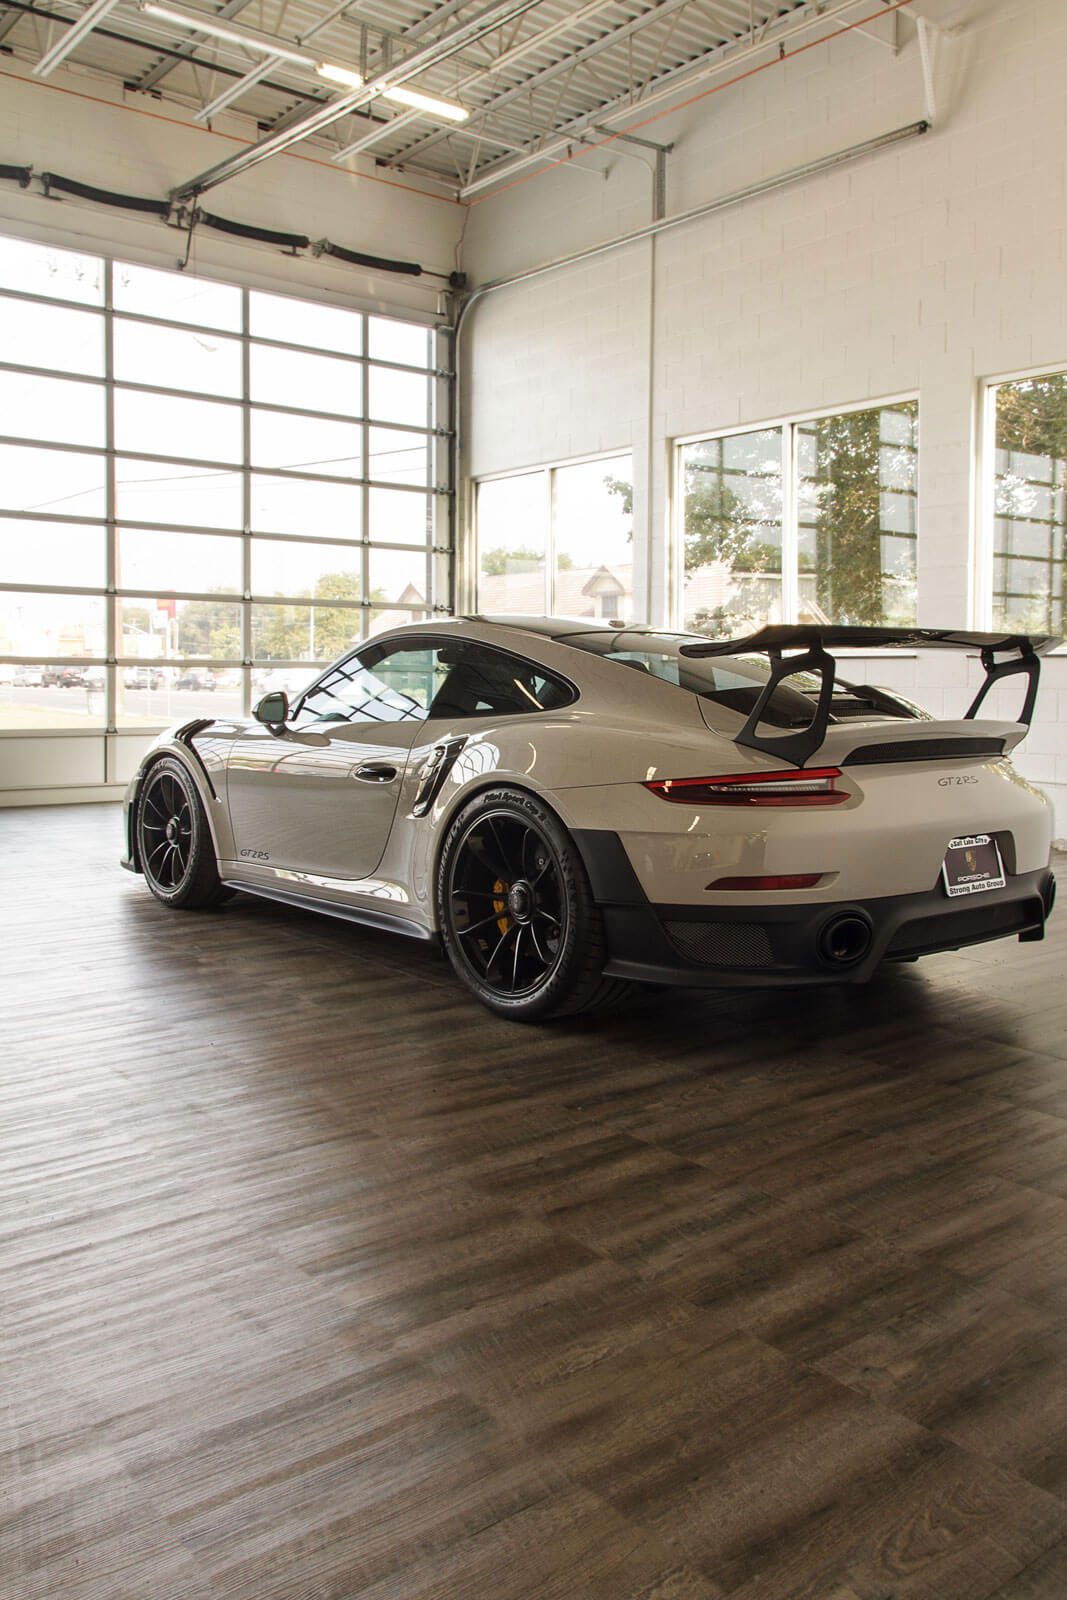 A Porsche GT2 RS at the Luxe Auto Spa.